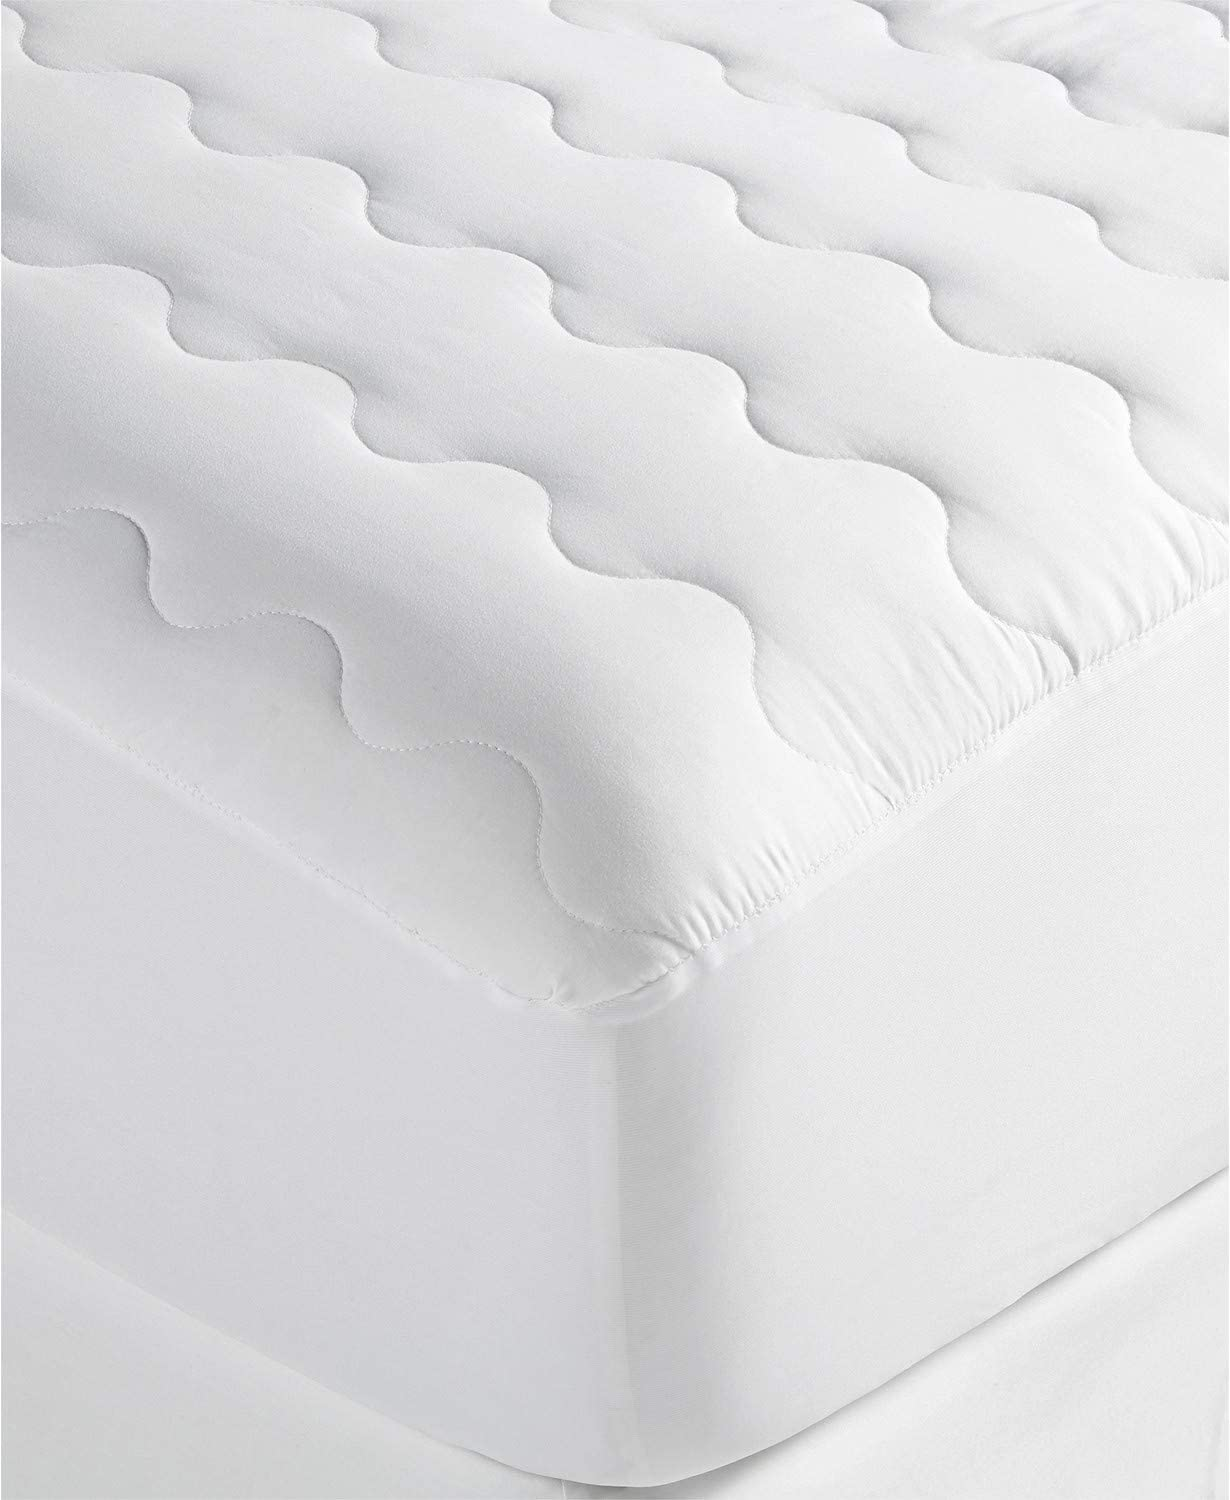 Martha Stewart Essentials Waterproof Pad King White Outlet sale feature Selling and selling Mattress